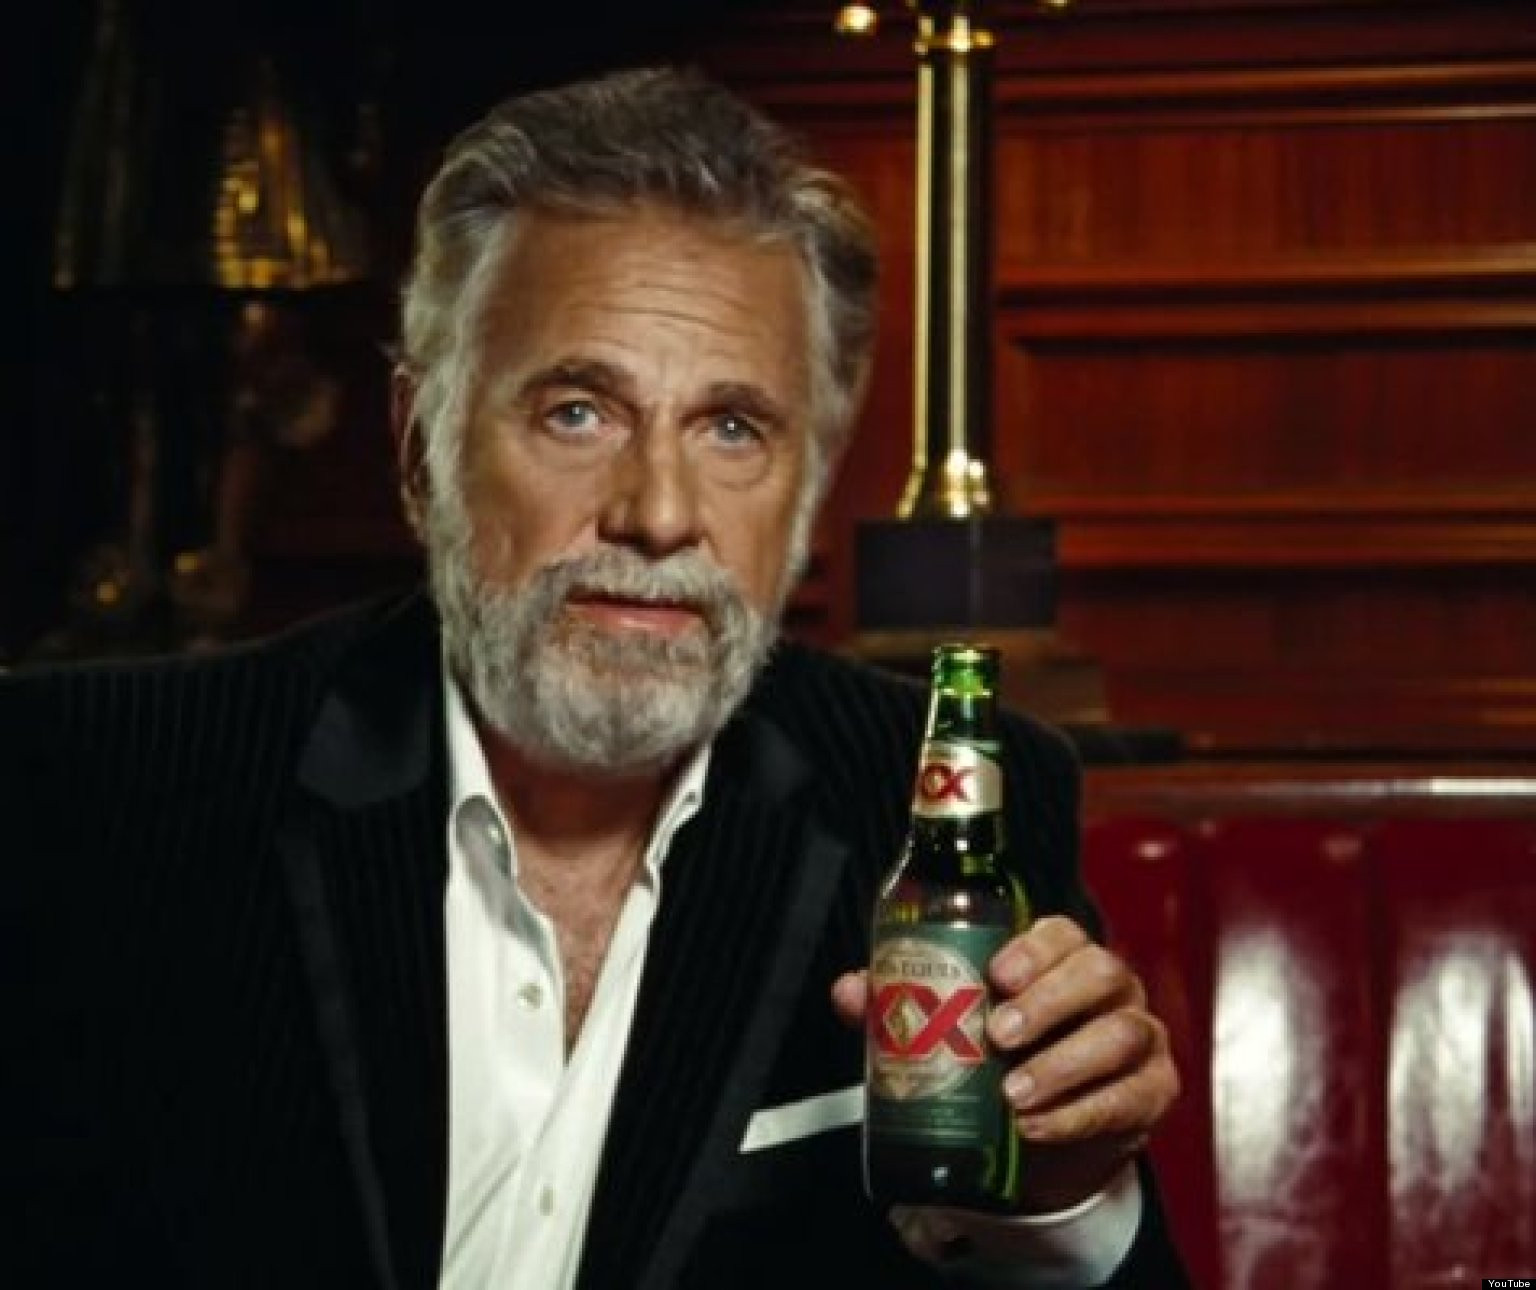 The Interesting Man In The World Quotes: The Most Interesting Man In The World Returns: Dos Equis